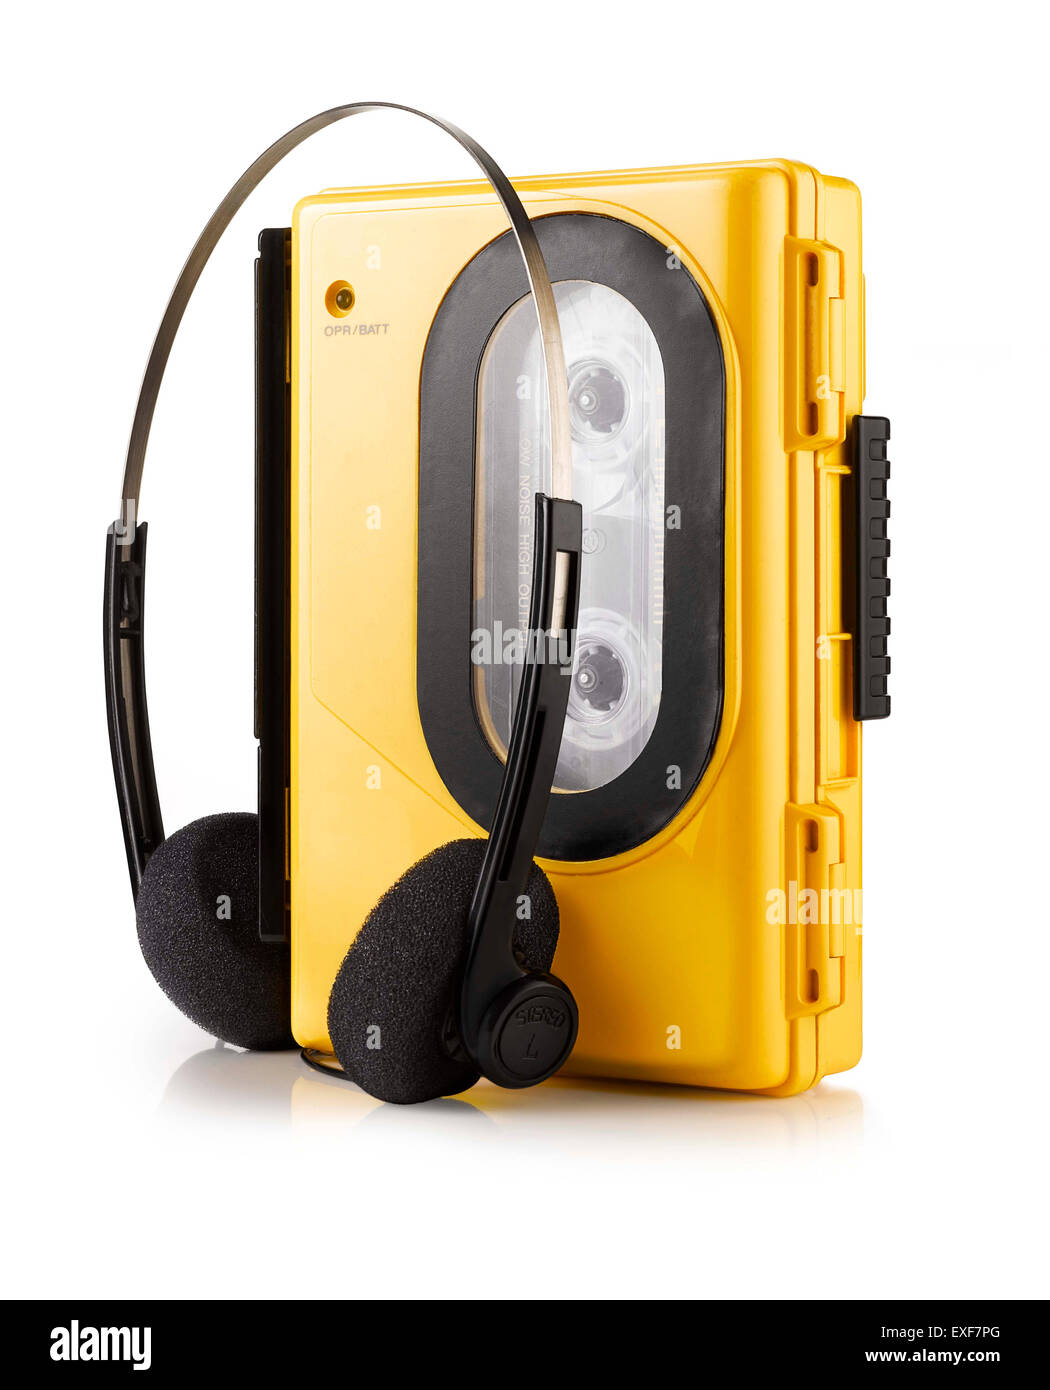 An old fashioned yellow portable Walkman style cassette player - Stock Image